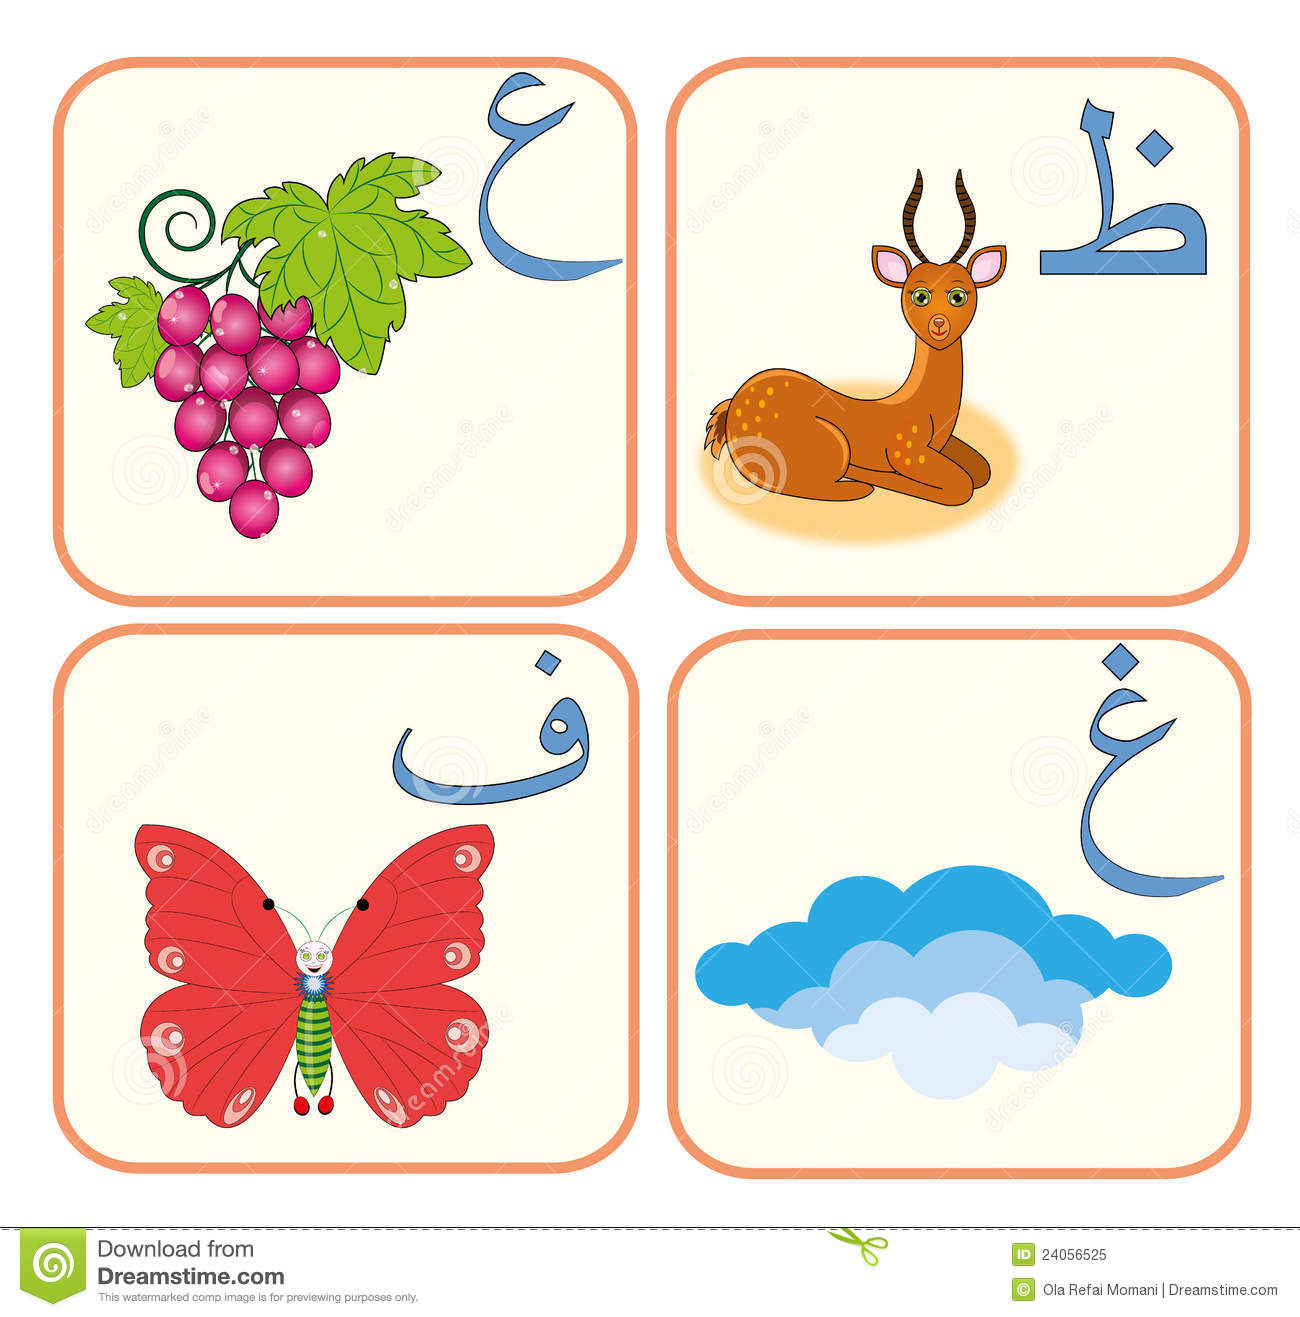 Arabic alphabet for kids with cute animals and fruit for each letter - Alphabet Arabic Cute Kids Letter Arab Planes Cloud Educate Animal Fruit